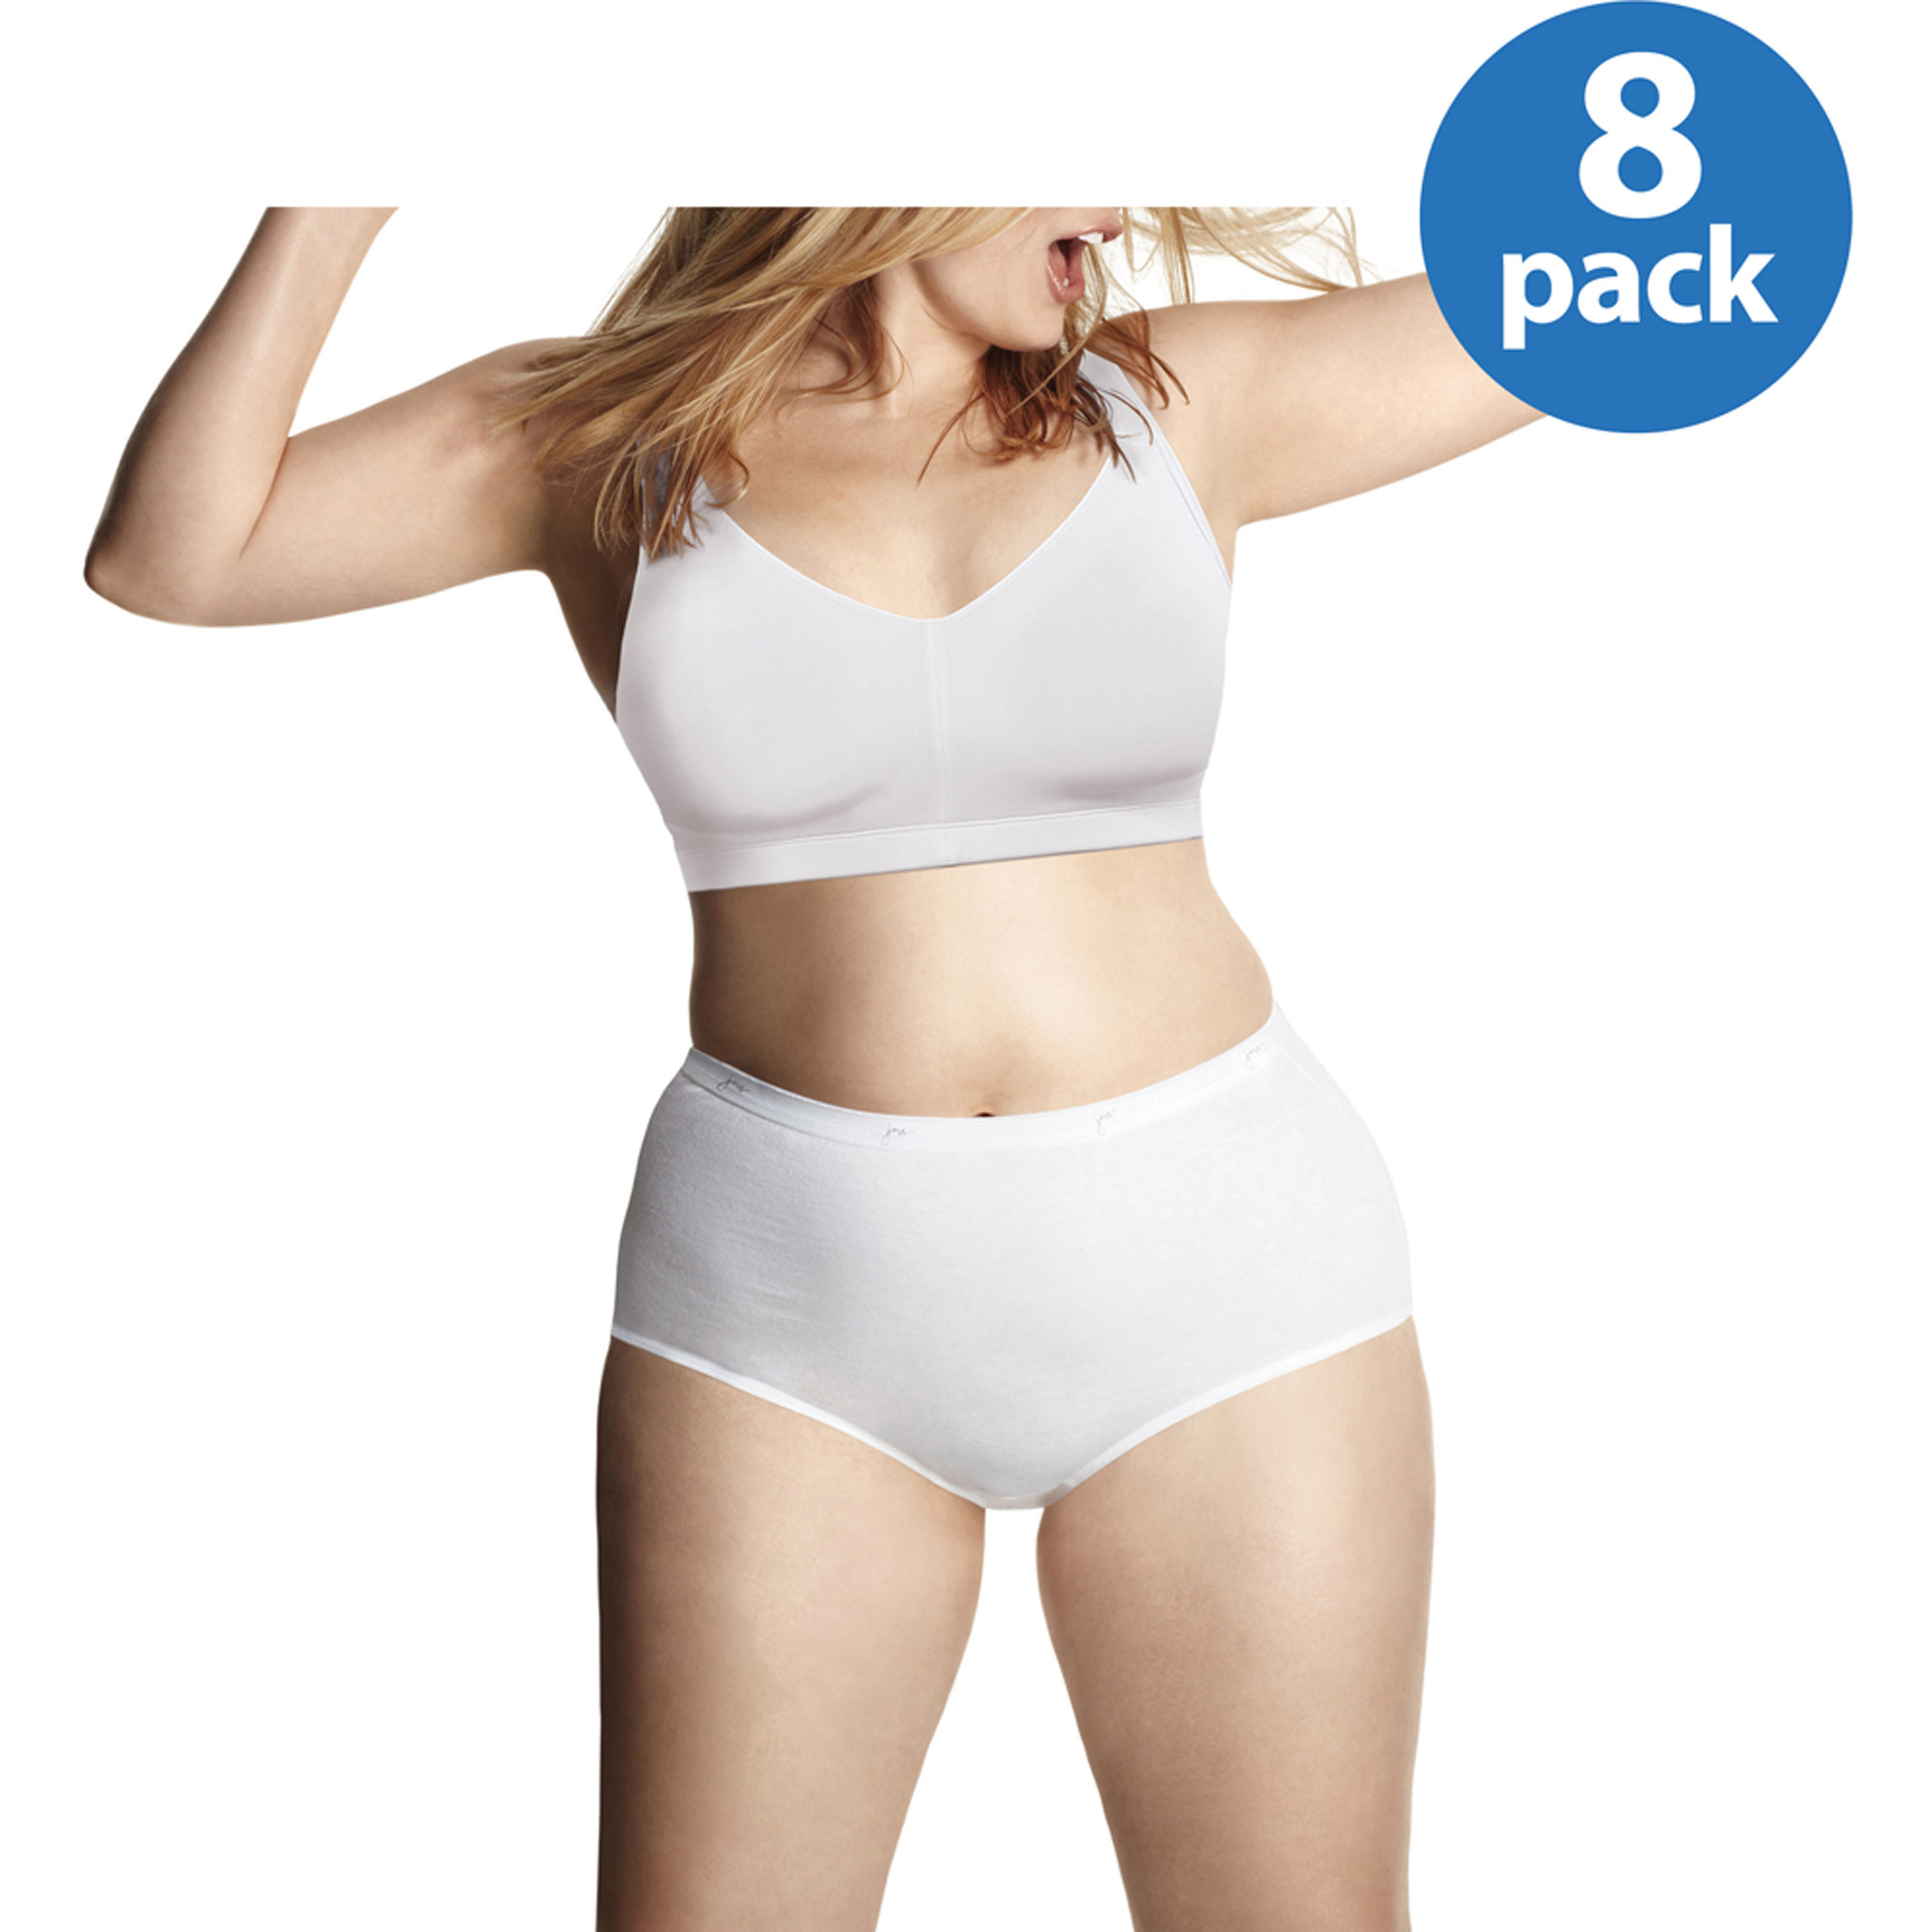 Just My Size Women's Cotton Brief 8 Pack